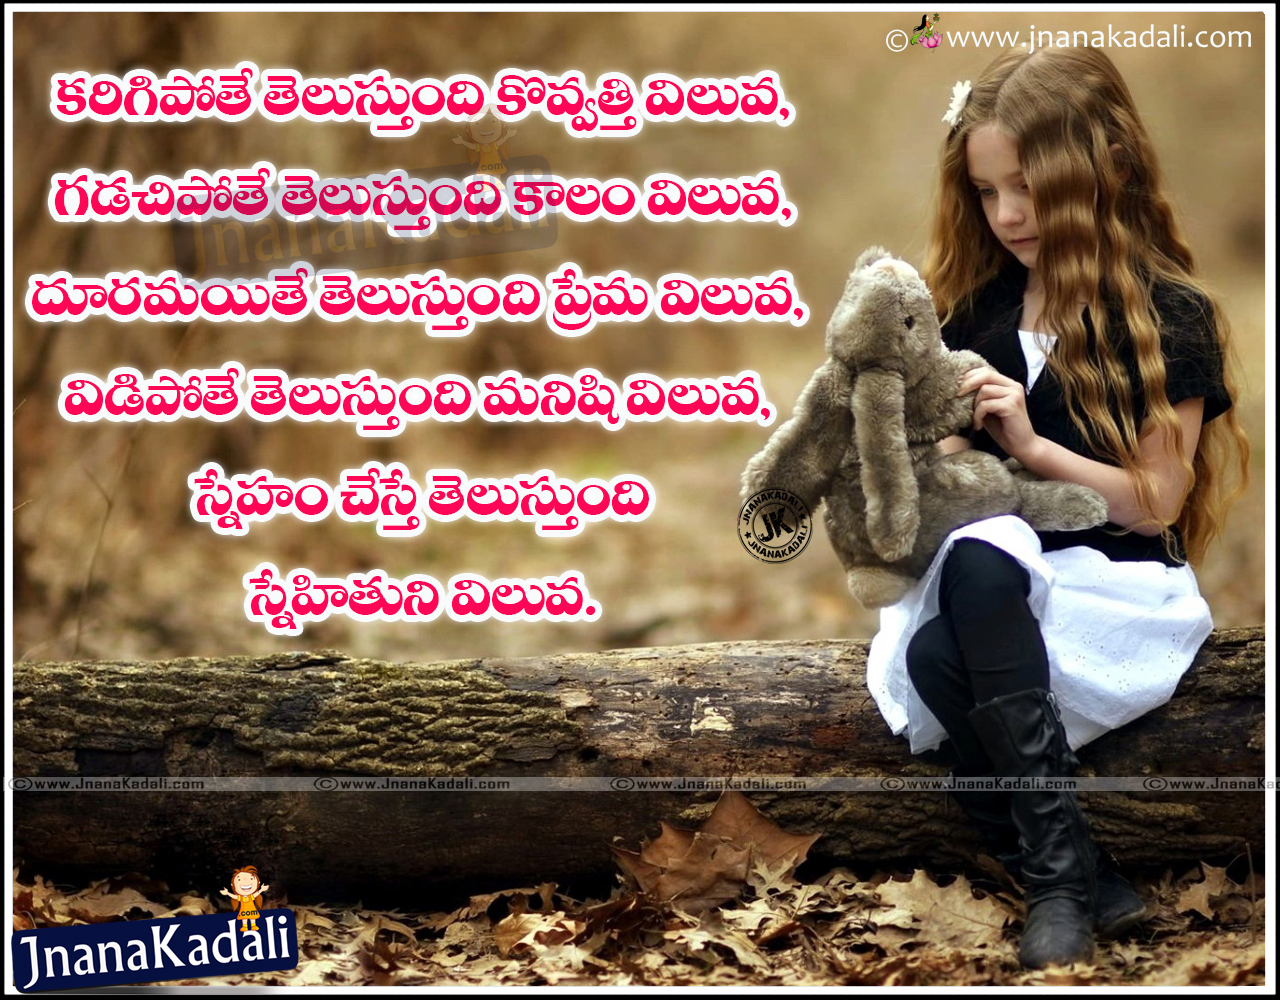 Quotes About The Importance Of Friendship Beautiful Telugu Friendship Messages With Pictures  Jnana Kadali